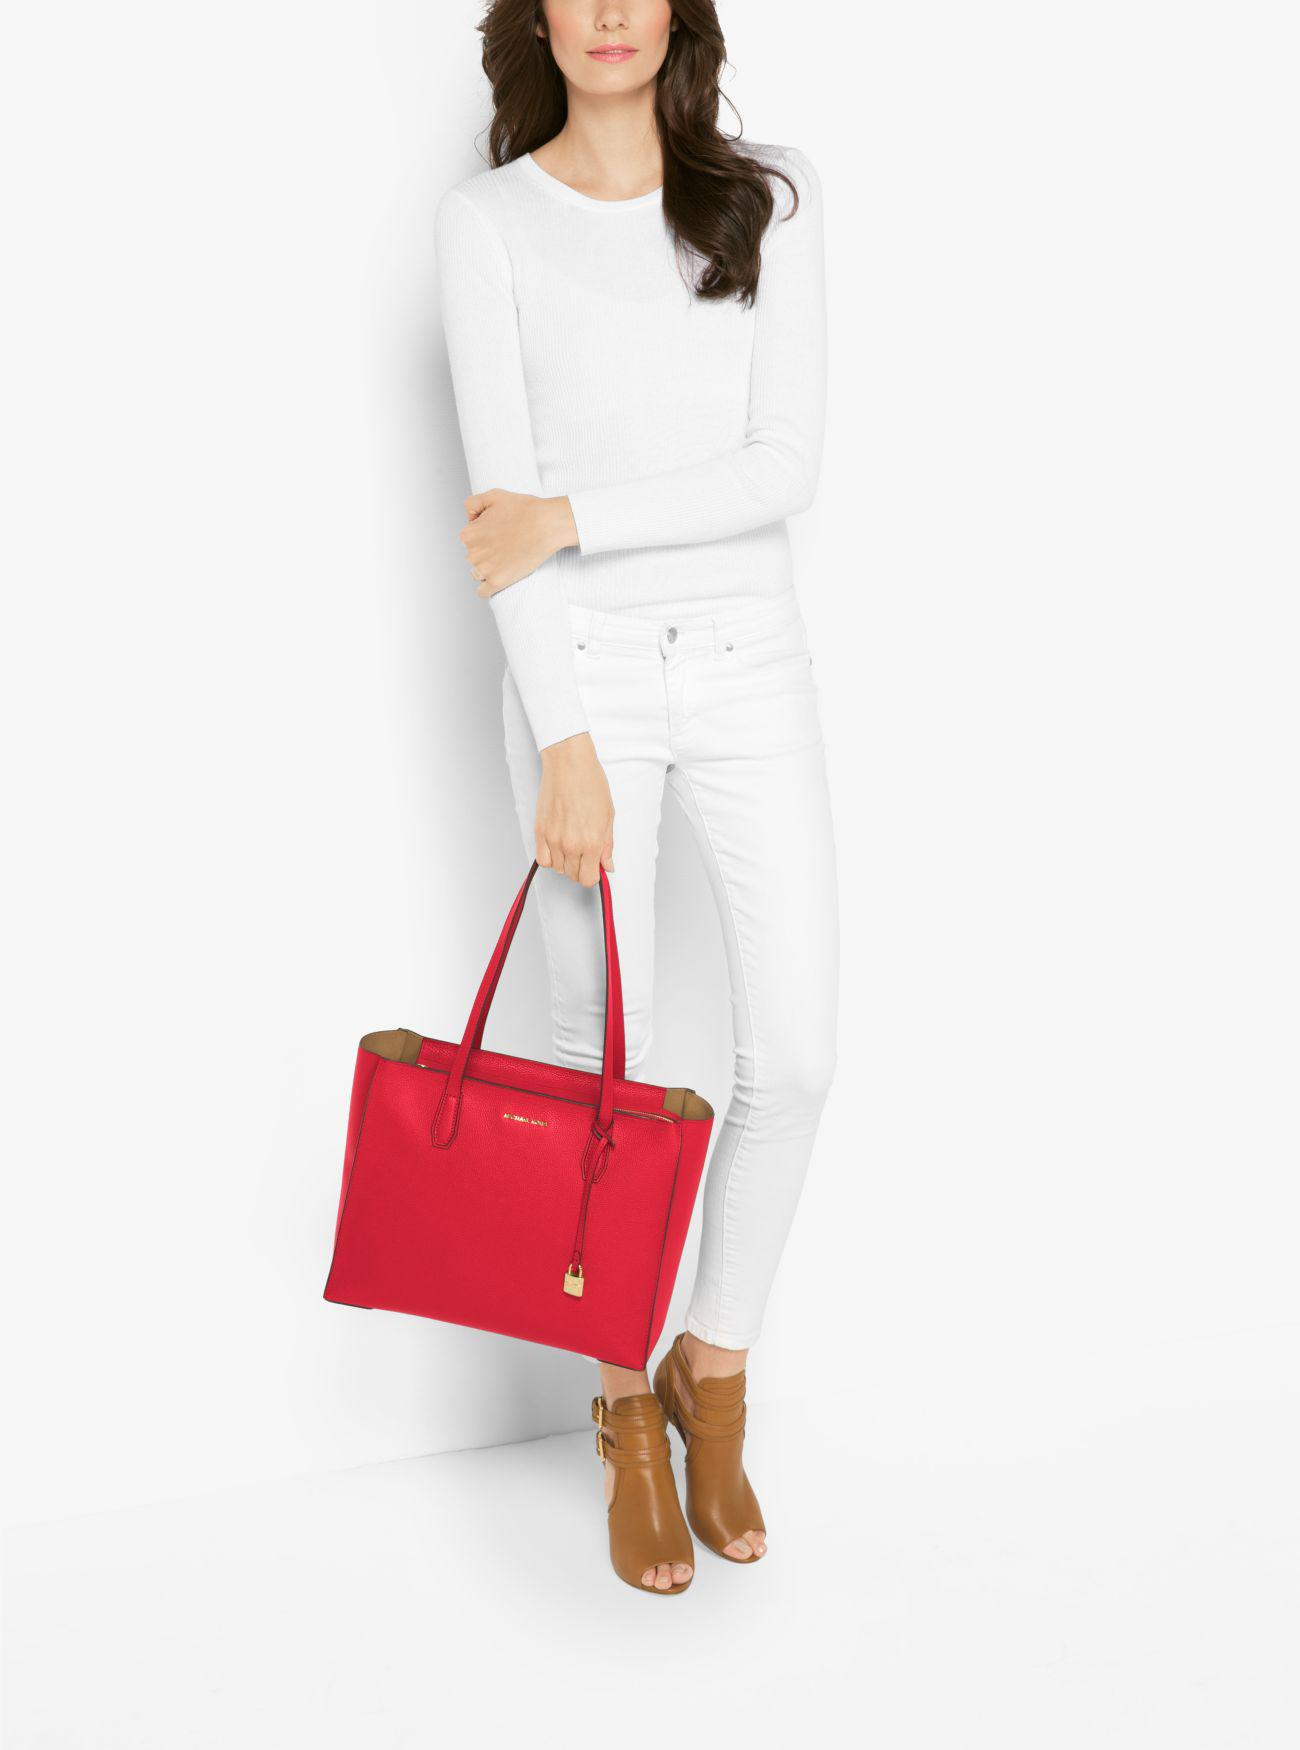 d6835f8cae21 Michael Kors Mercer Large Pebbled Leather Top-zip Tote Bag in Red - Lyst